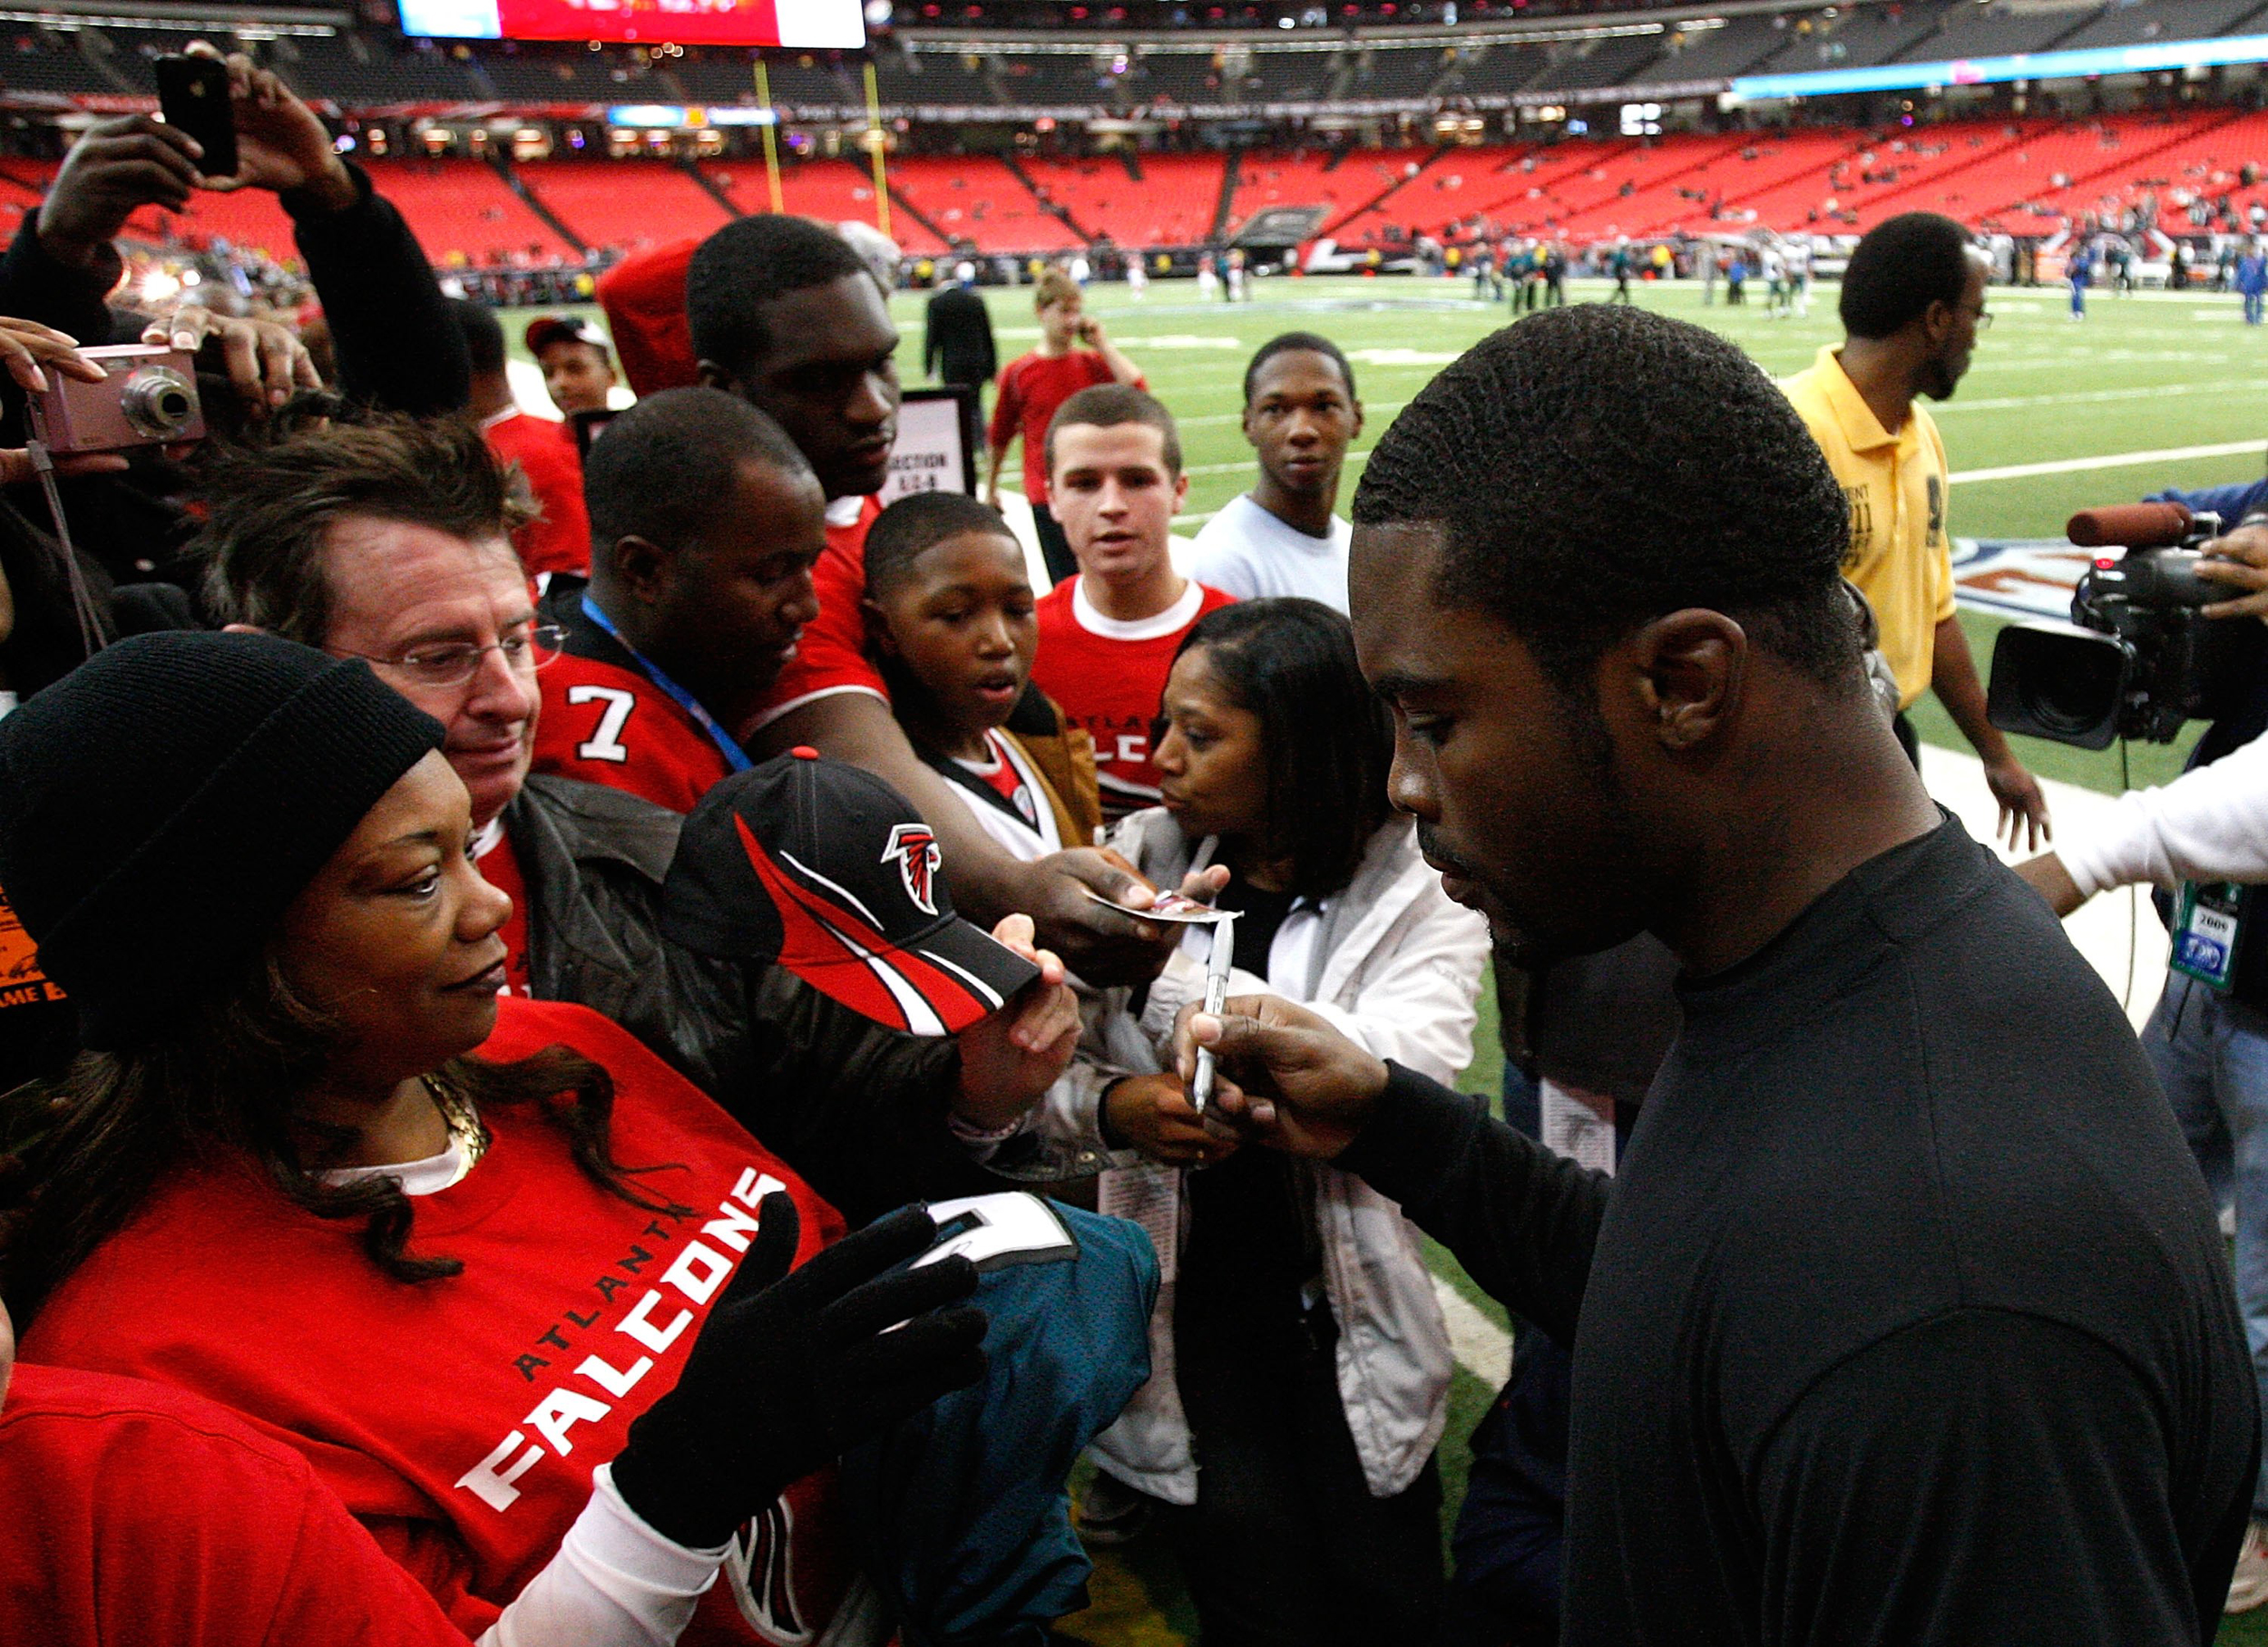 Michael Vick #7 of the Philadelphia Eagles is greeted by fans of the Atlanta Falcons before the game at Georgia Dome on December 6, 2009 in Atlanta, Georgia.